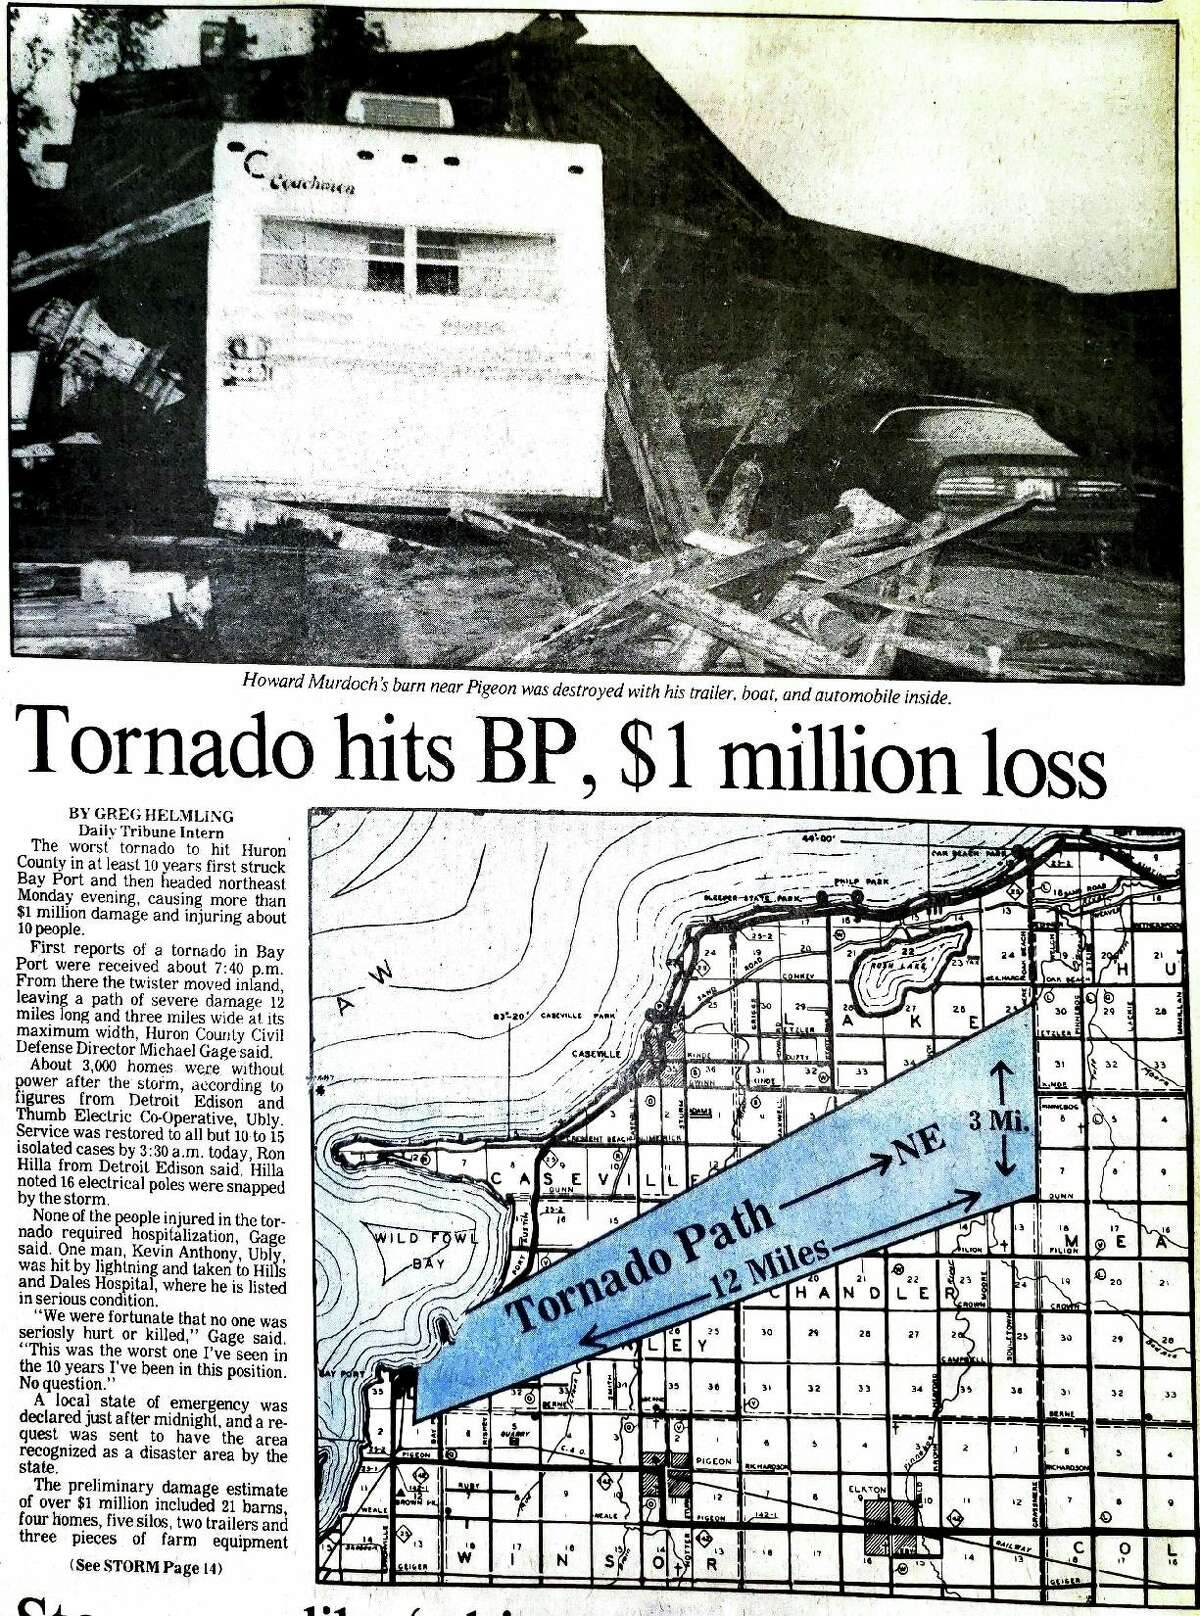 This front page story from the Tribune's June 13, 1984 issue shows the path the strongest tornado to hit Huron County took. This tornado was the only EF-3 rated one to hit the area. (Tribune File Photo)